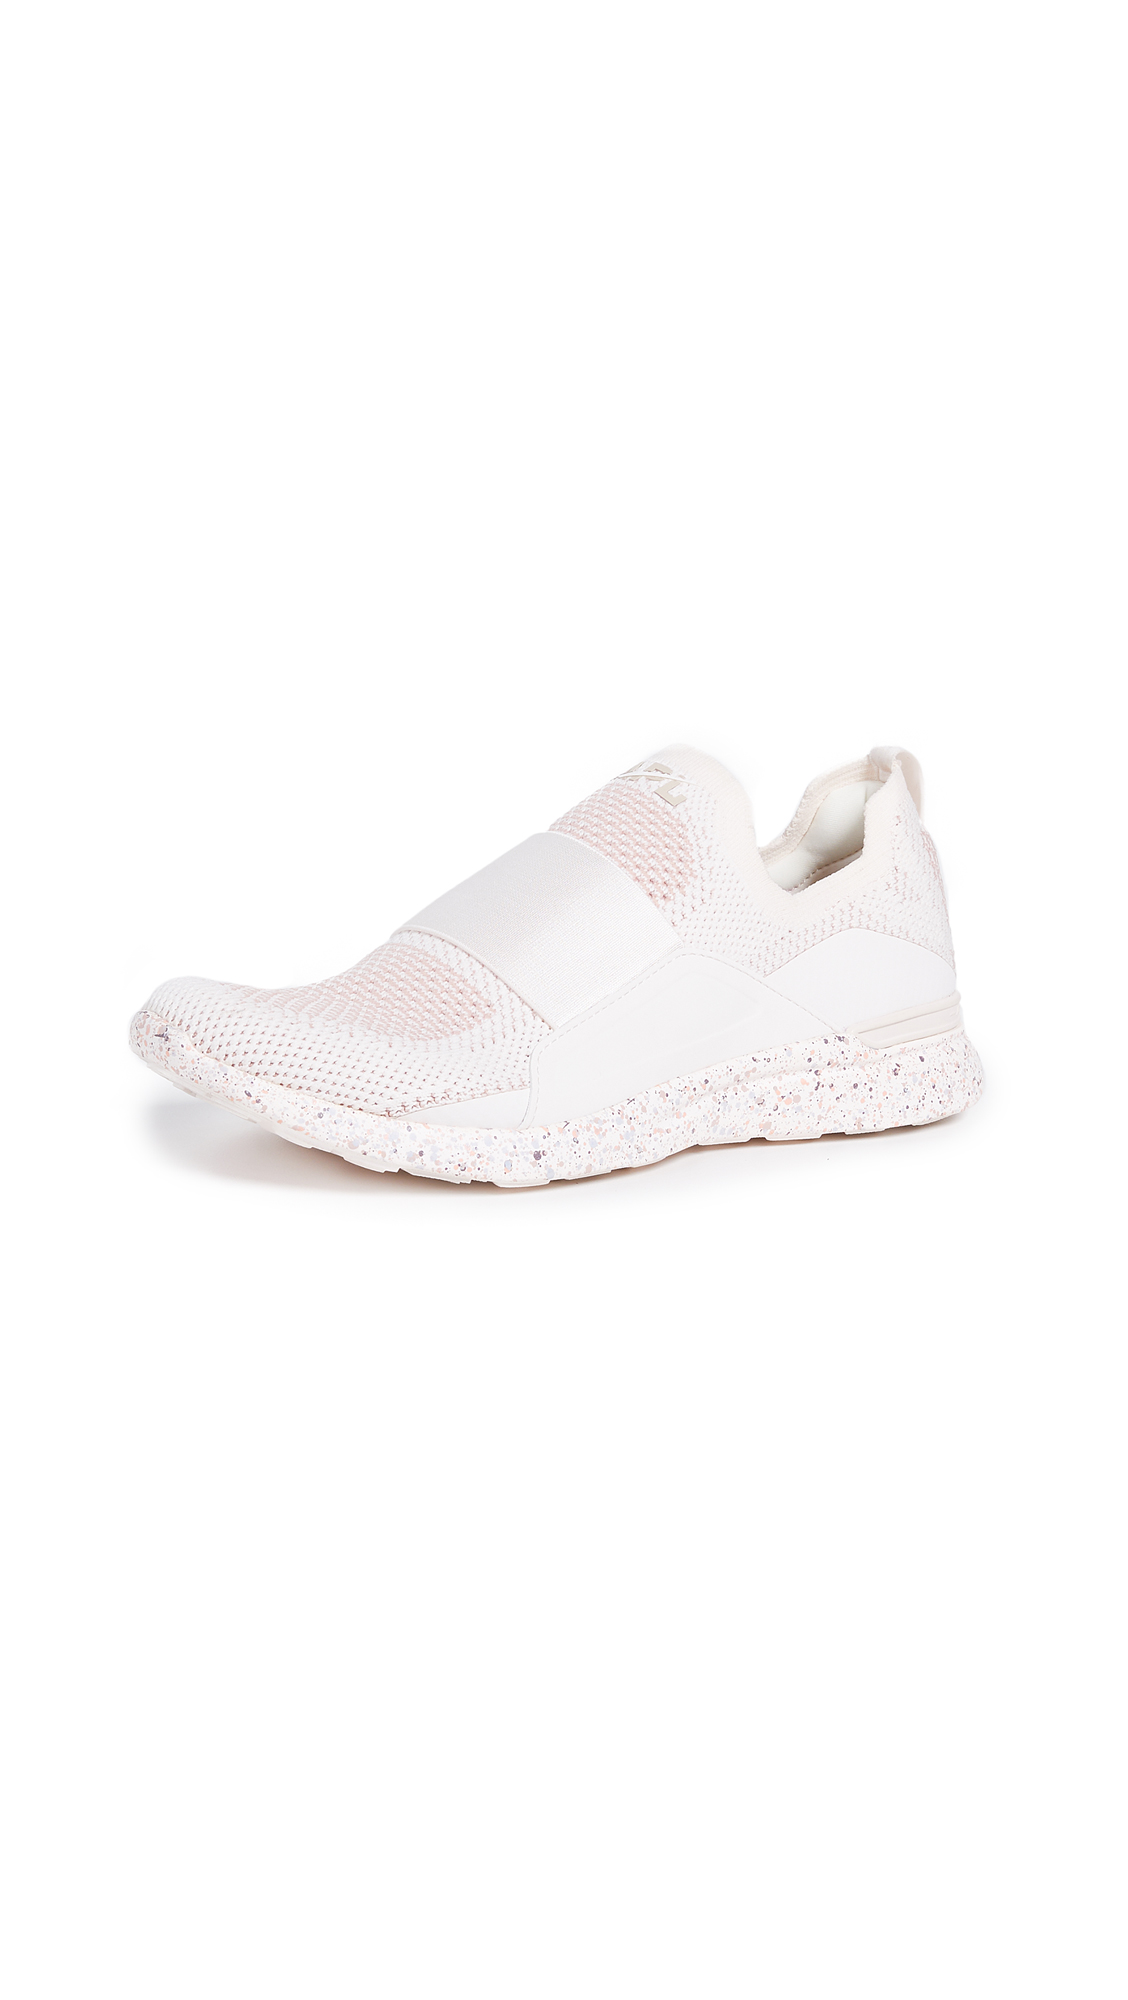 APL: Athletic Propulsion Labs TechLoom Bliss Sneakers - Sea Salt/Rose Dust/Salmon